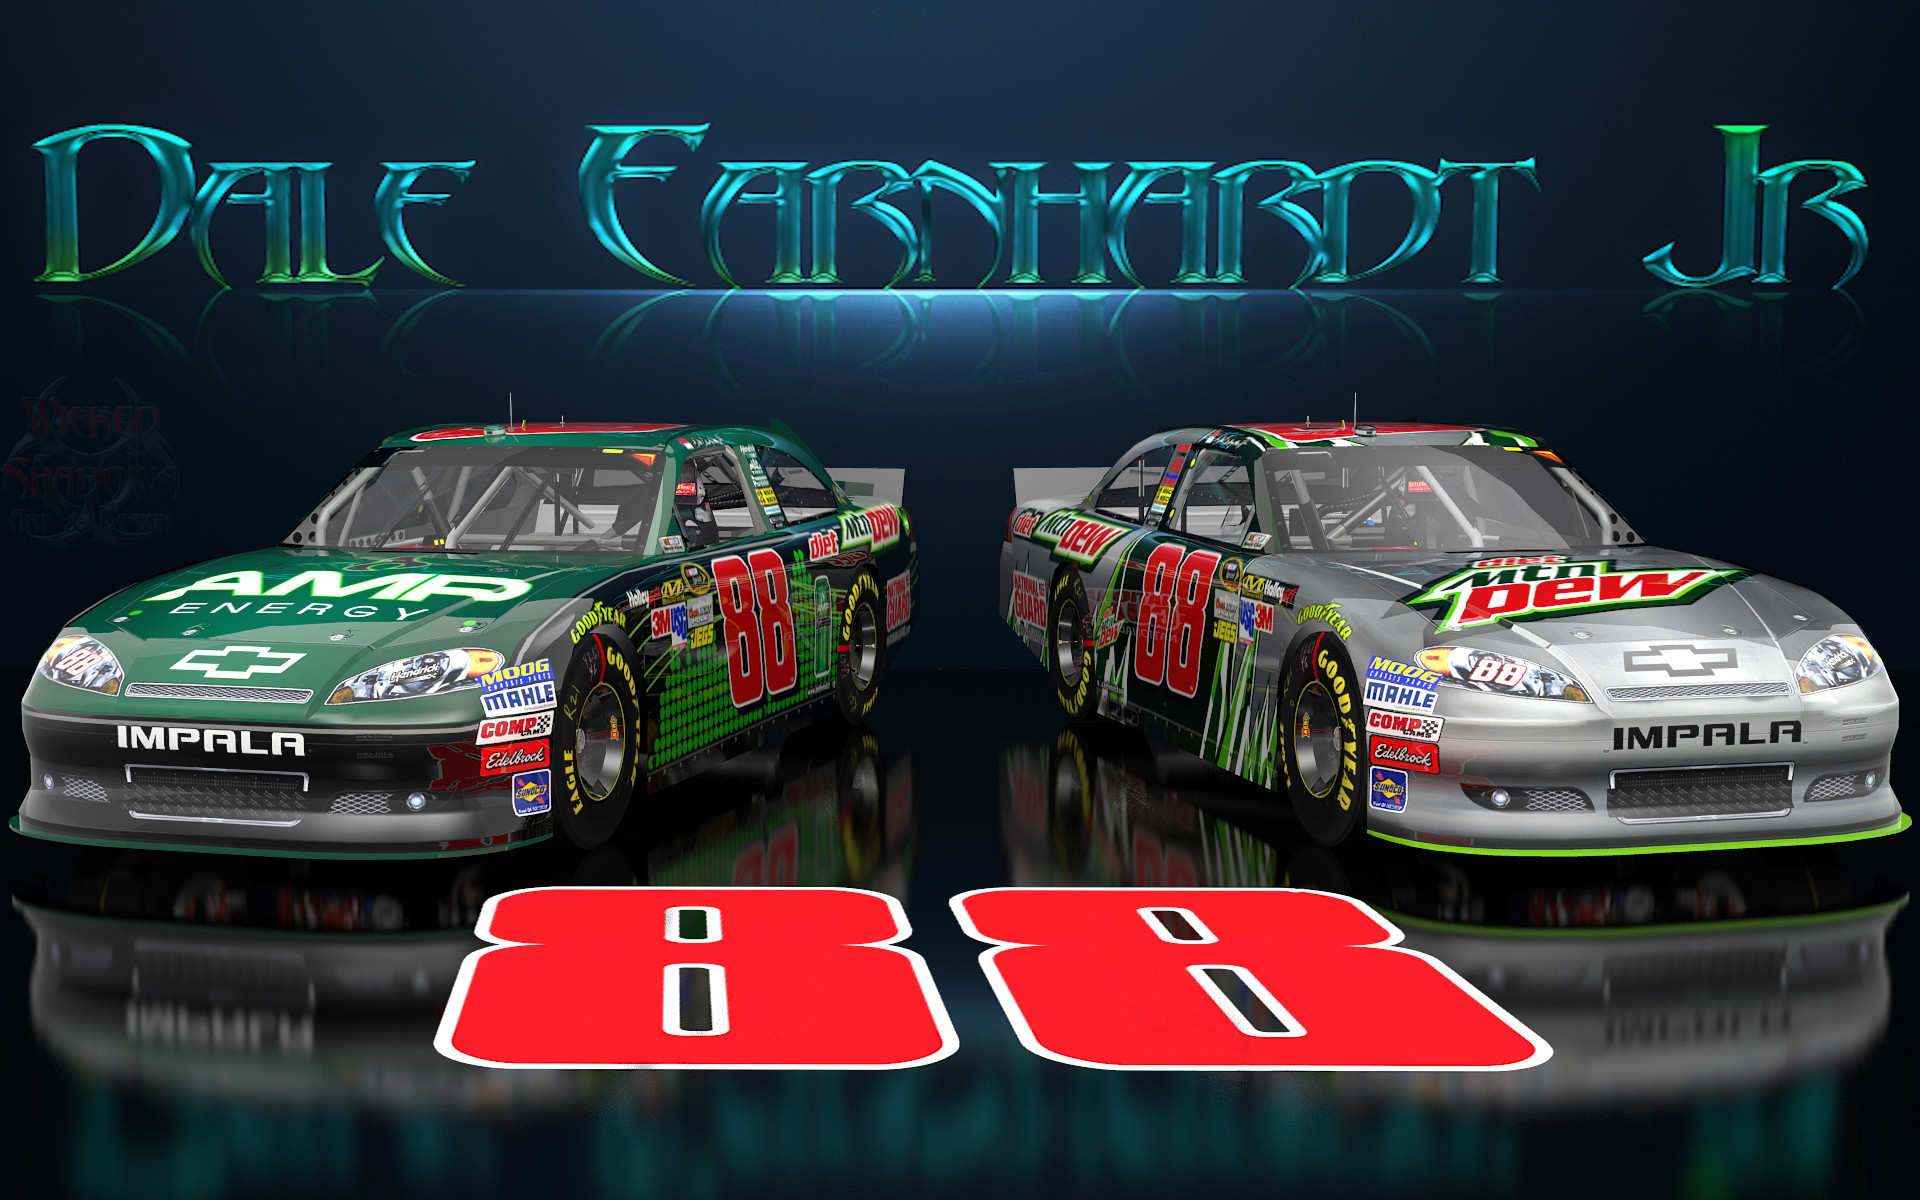 1920x1200 Dale Earnhardt Jr images Dale Earnhardt Jr Wicked Text Amp Diet Dew  Wallpaper 16x10 HD wallpaper and background photos